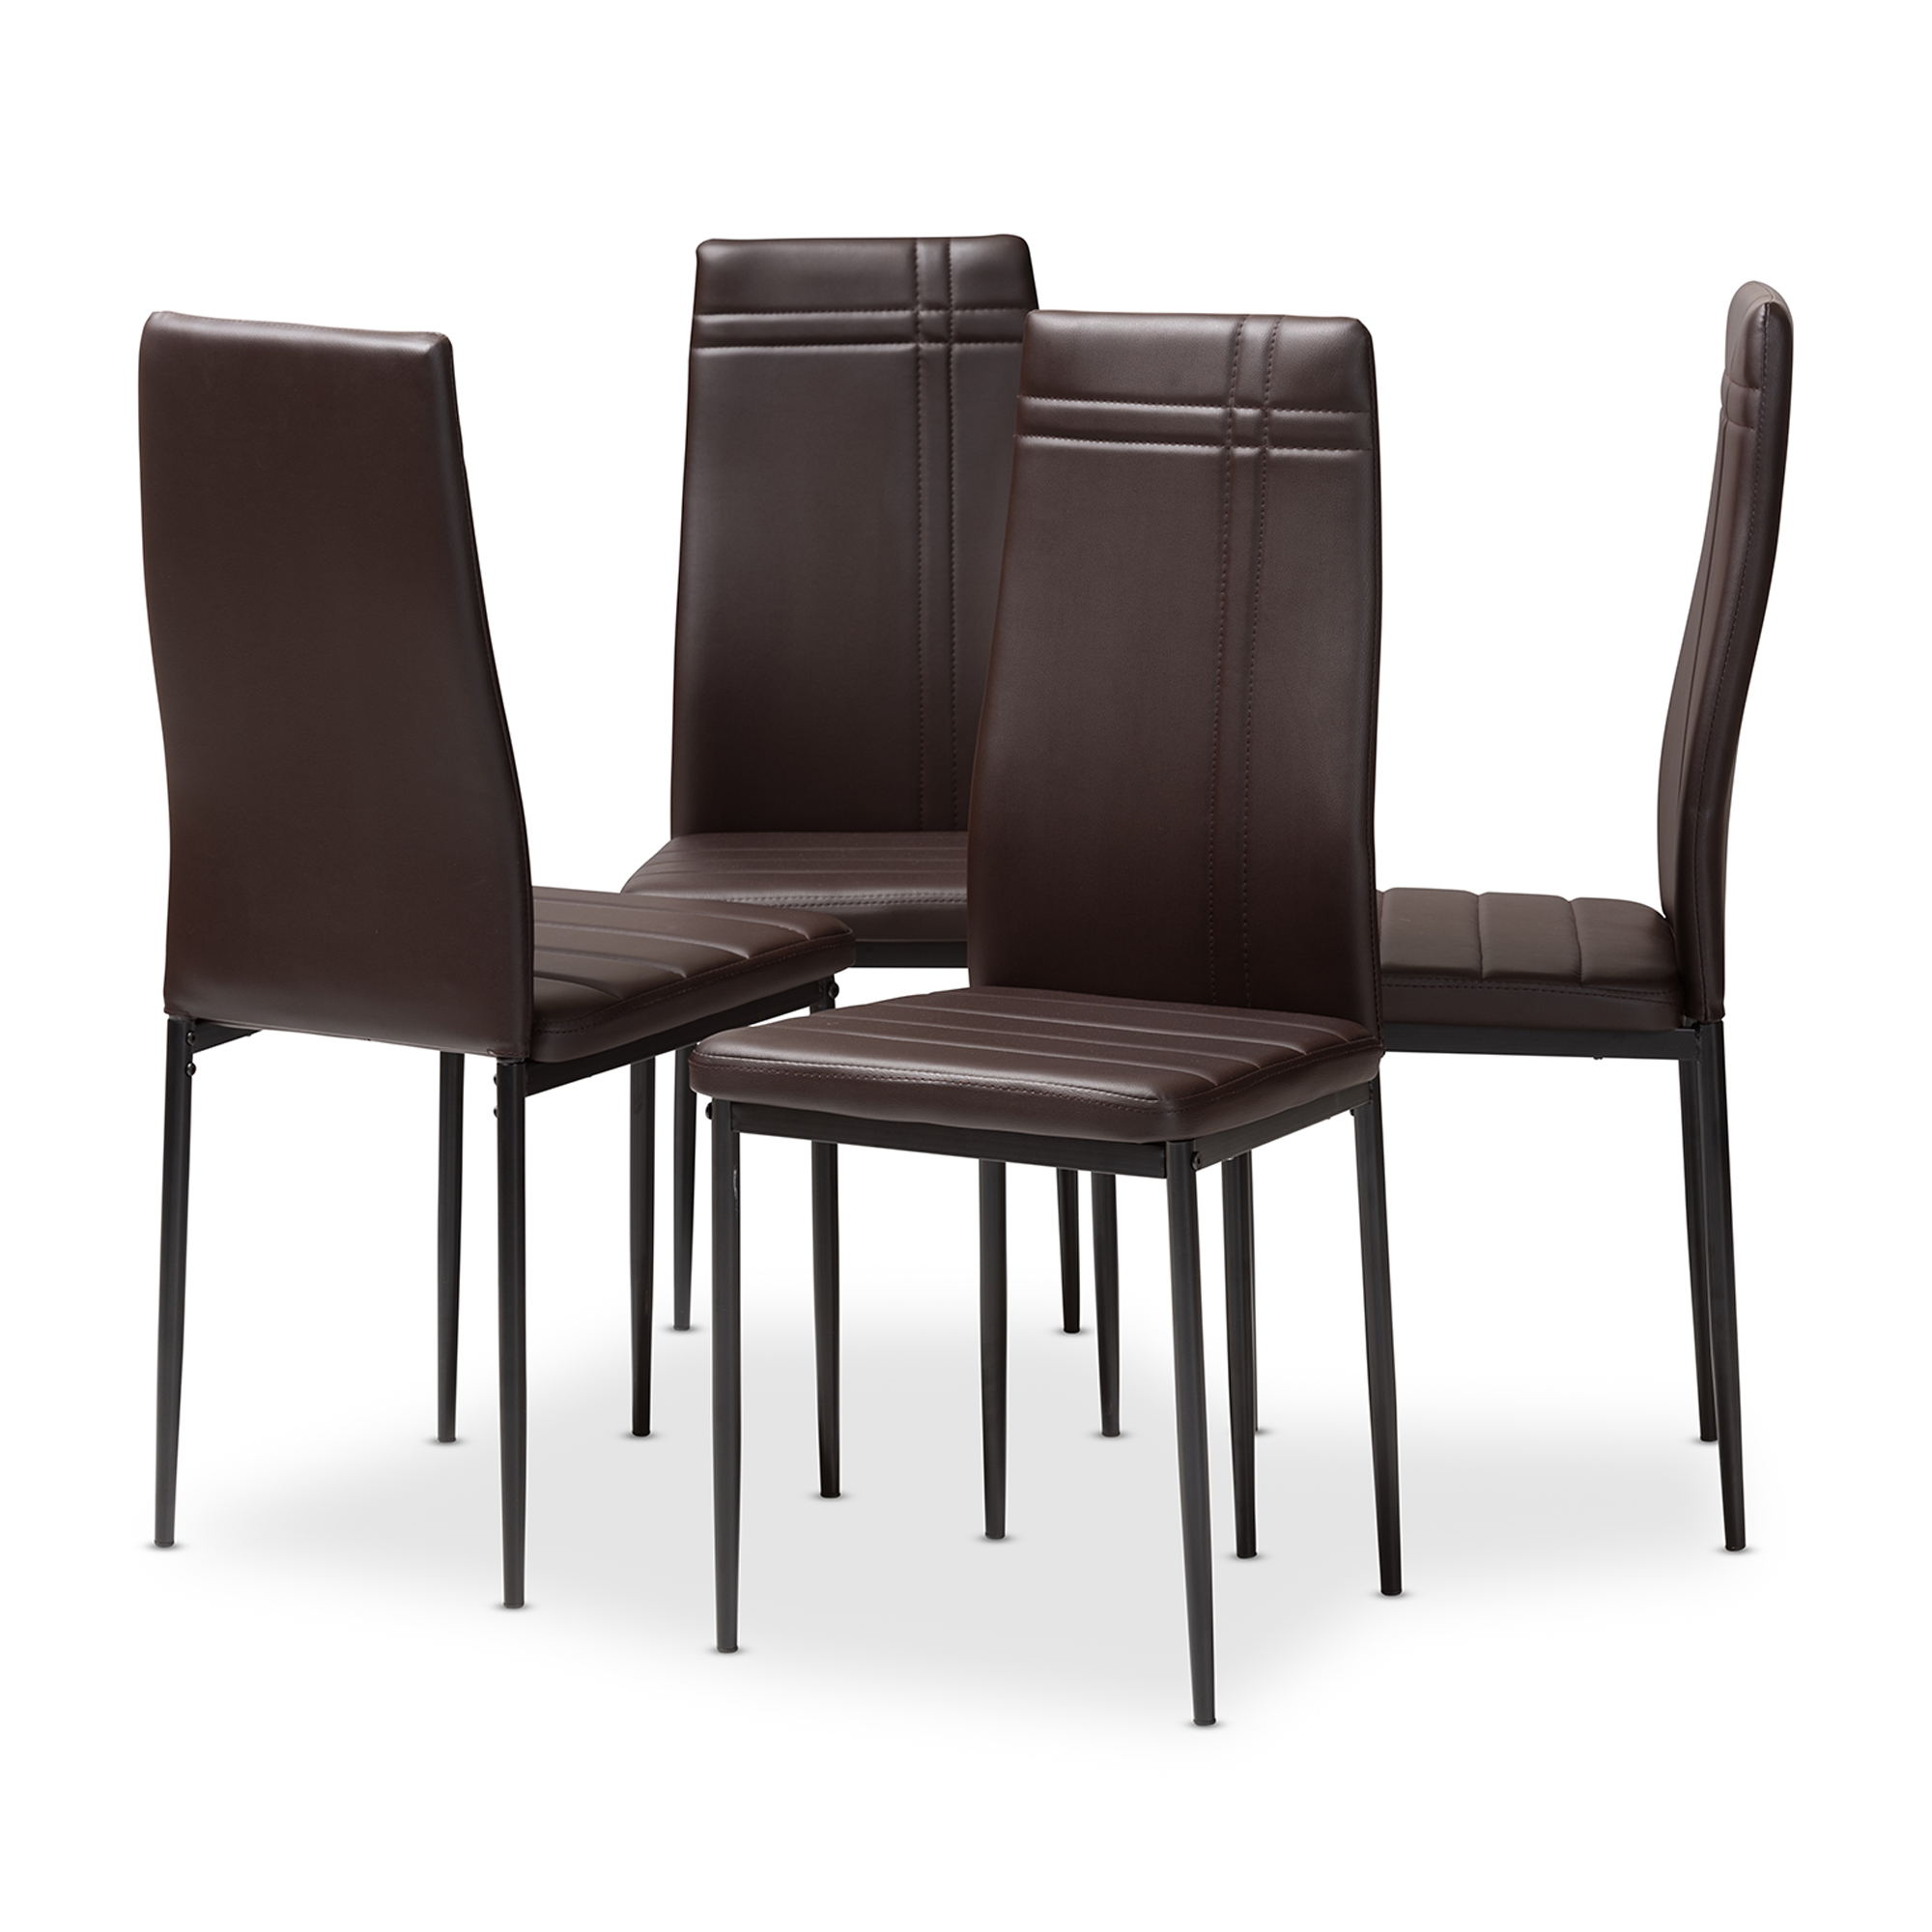 On Style Today 2020 10 11 Contemporary Leather Dining Room Chairs Here